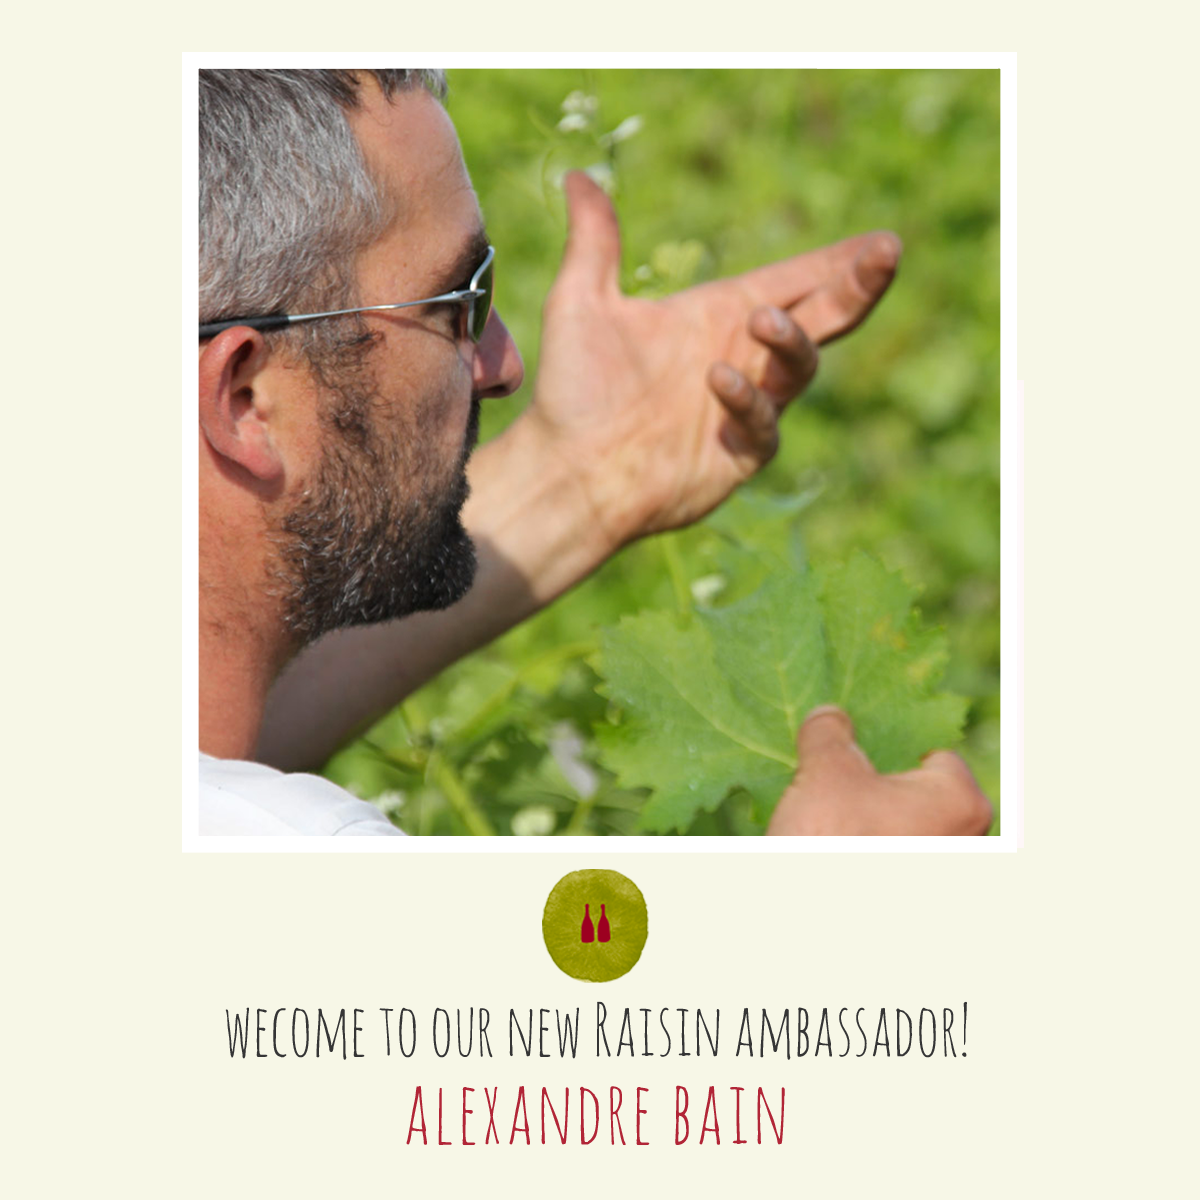 Welcome to Alexandre Bain, a new Raisin ambassador !